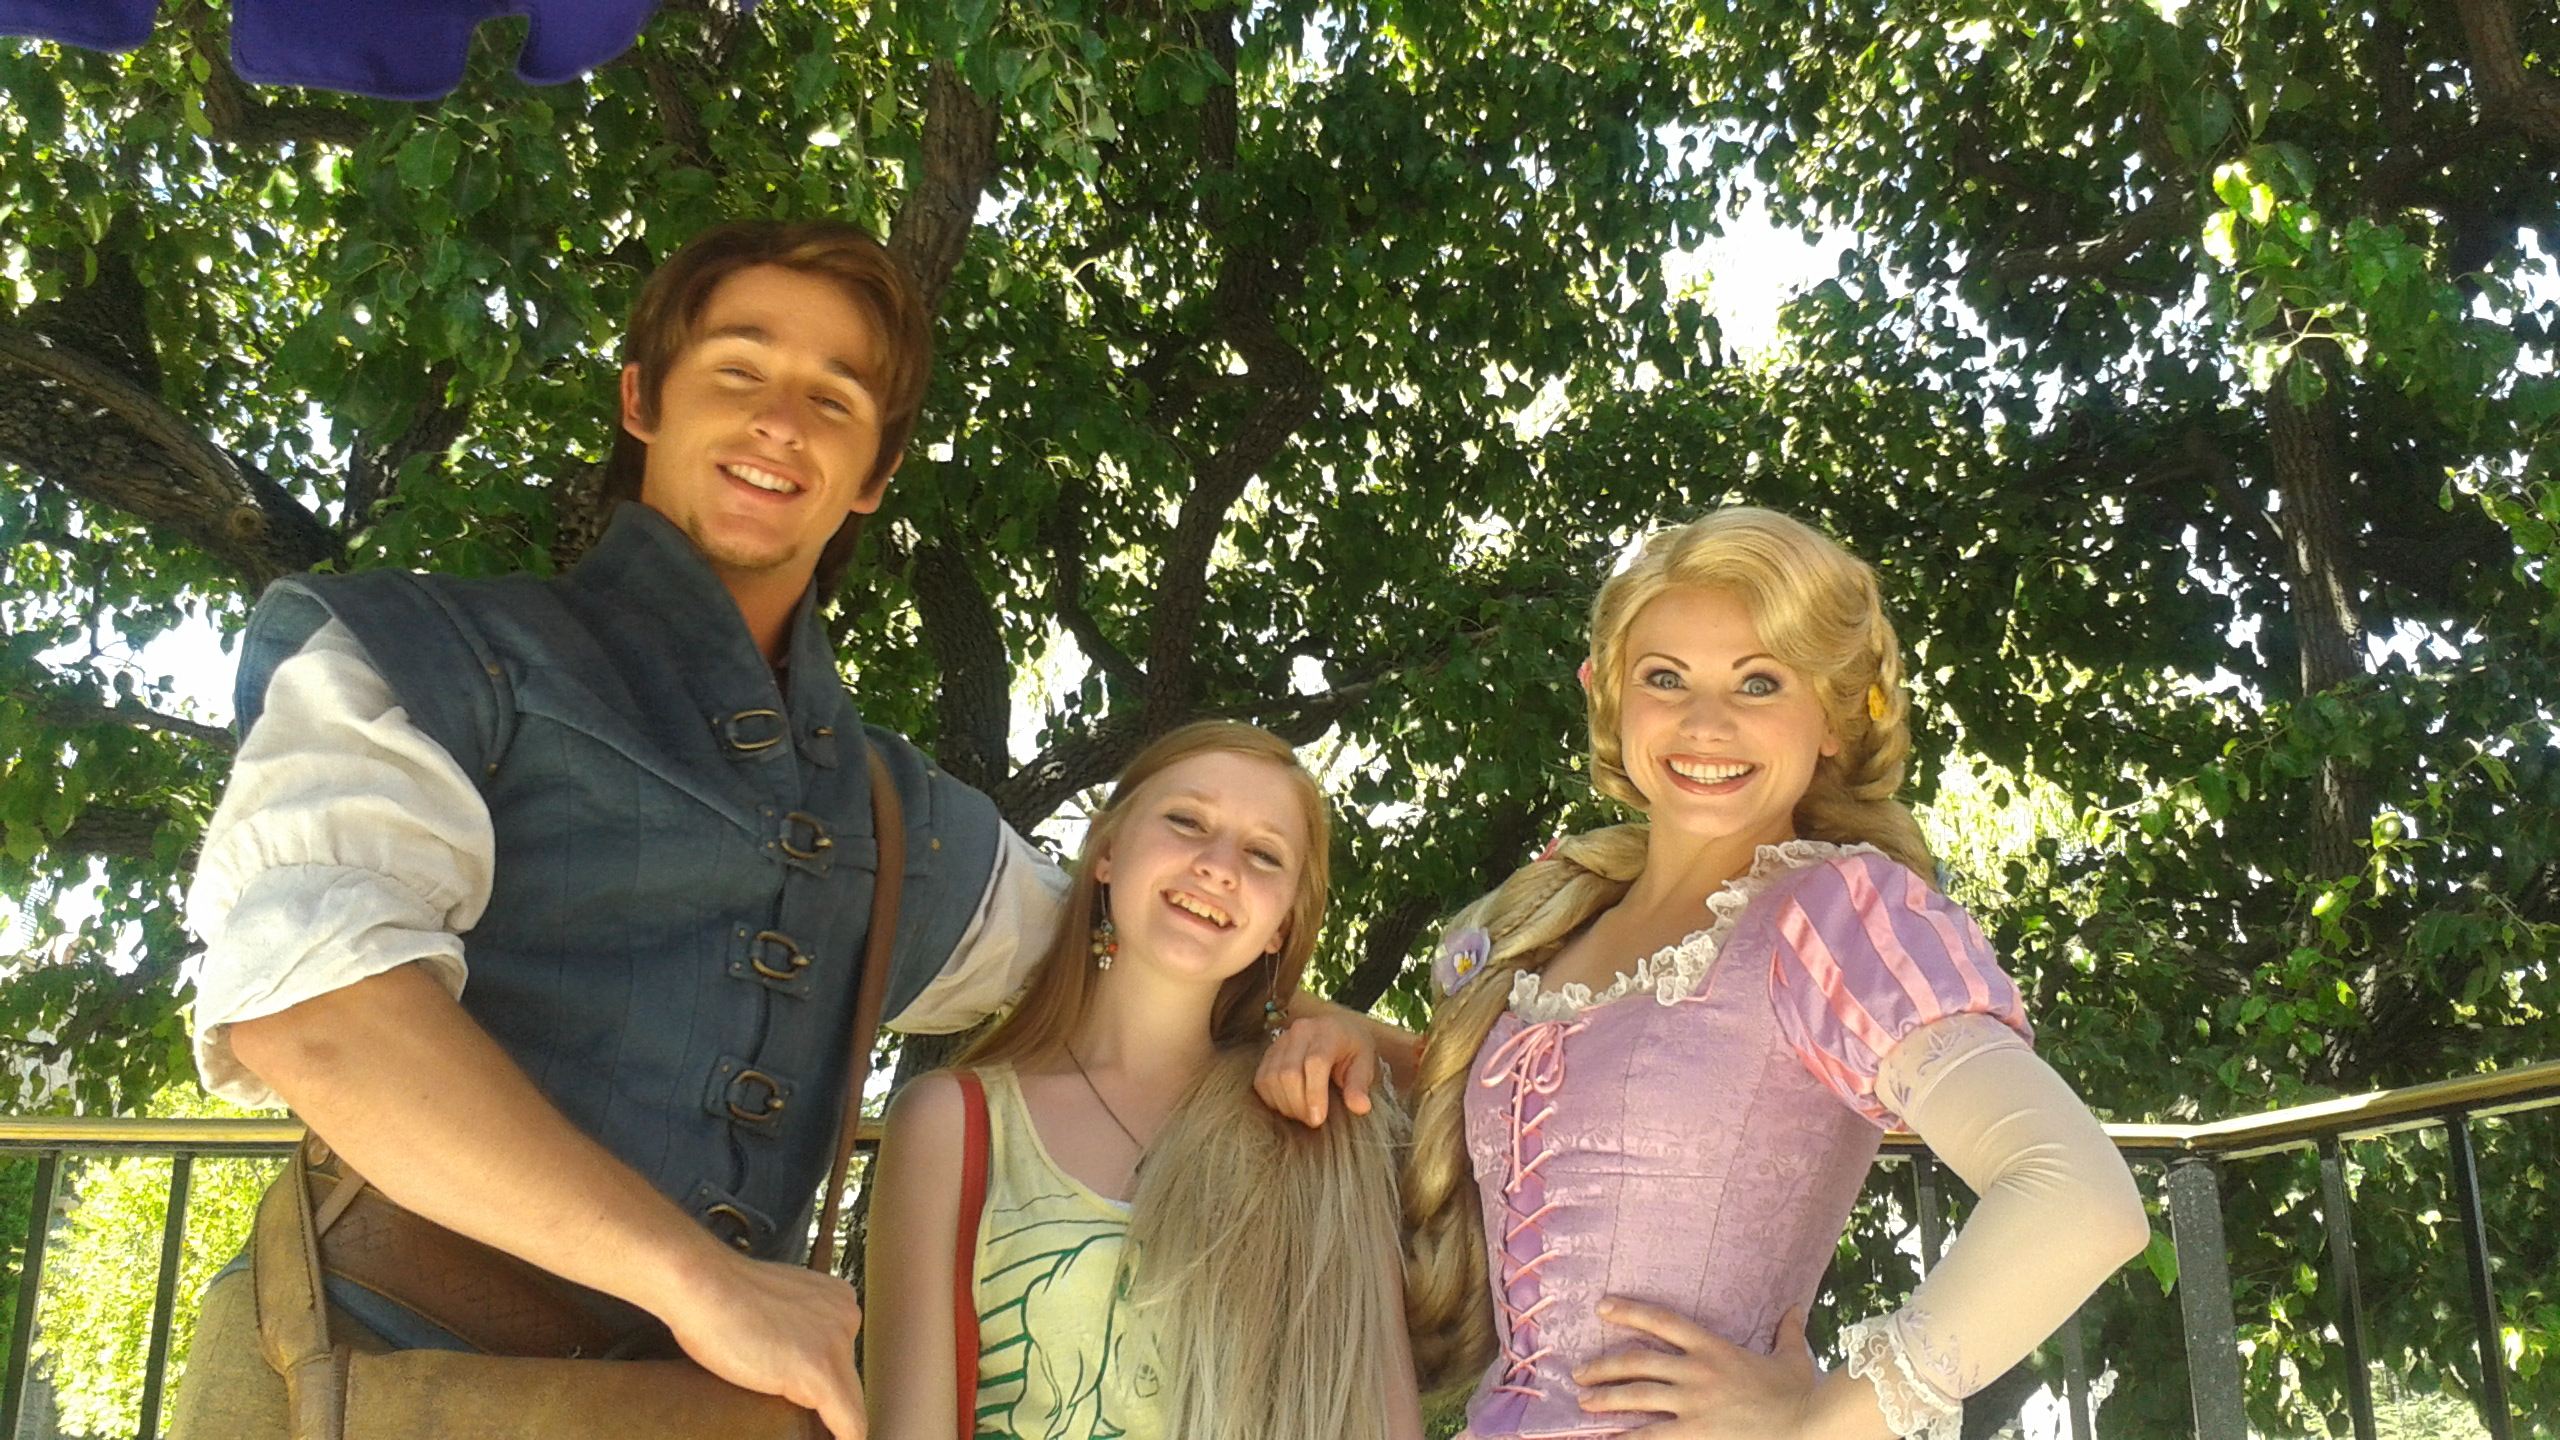 Meet And Greet With Rapunzel And Flynn Rider At Disneyland Tips